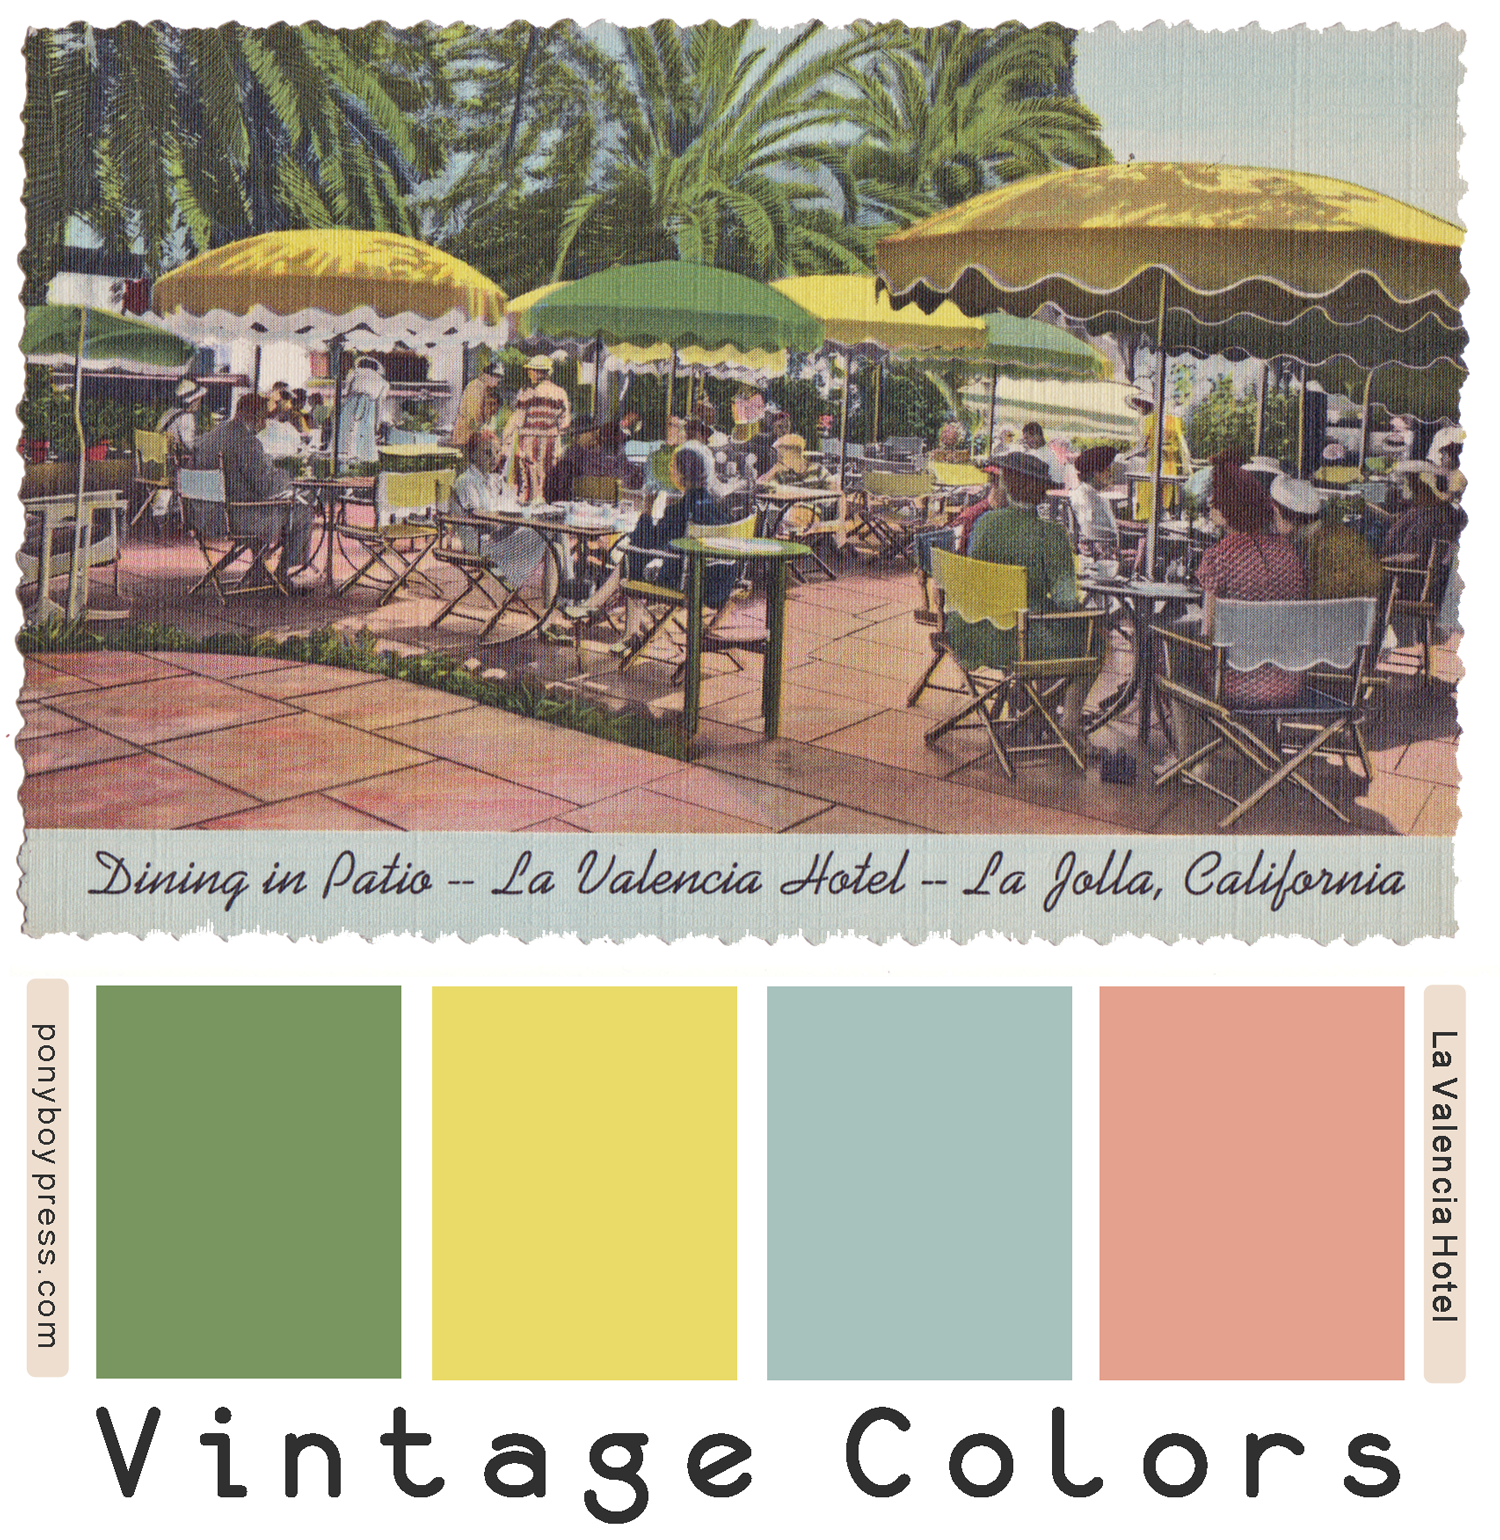 Vintage Color Palettes - La Valencia Hotel - Ponyboy Press ponyboypress.com